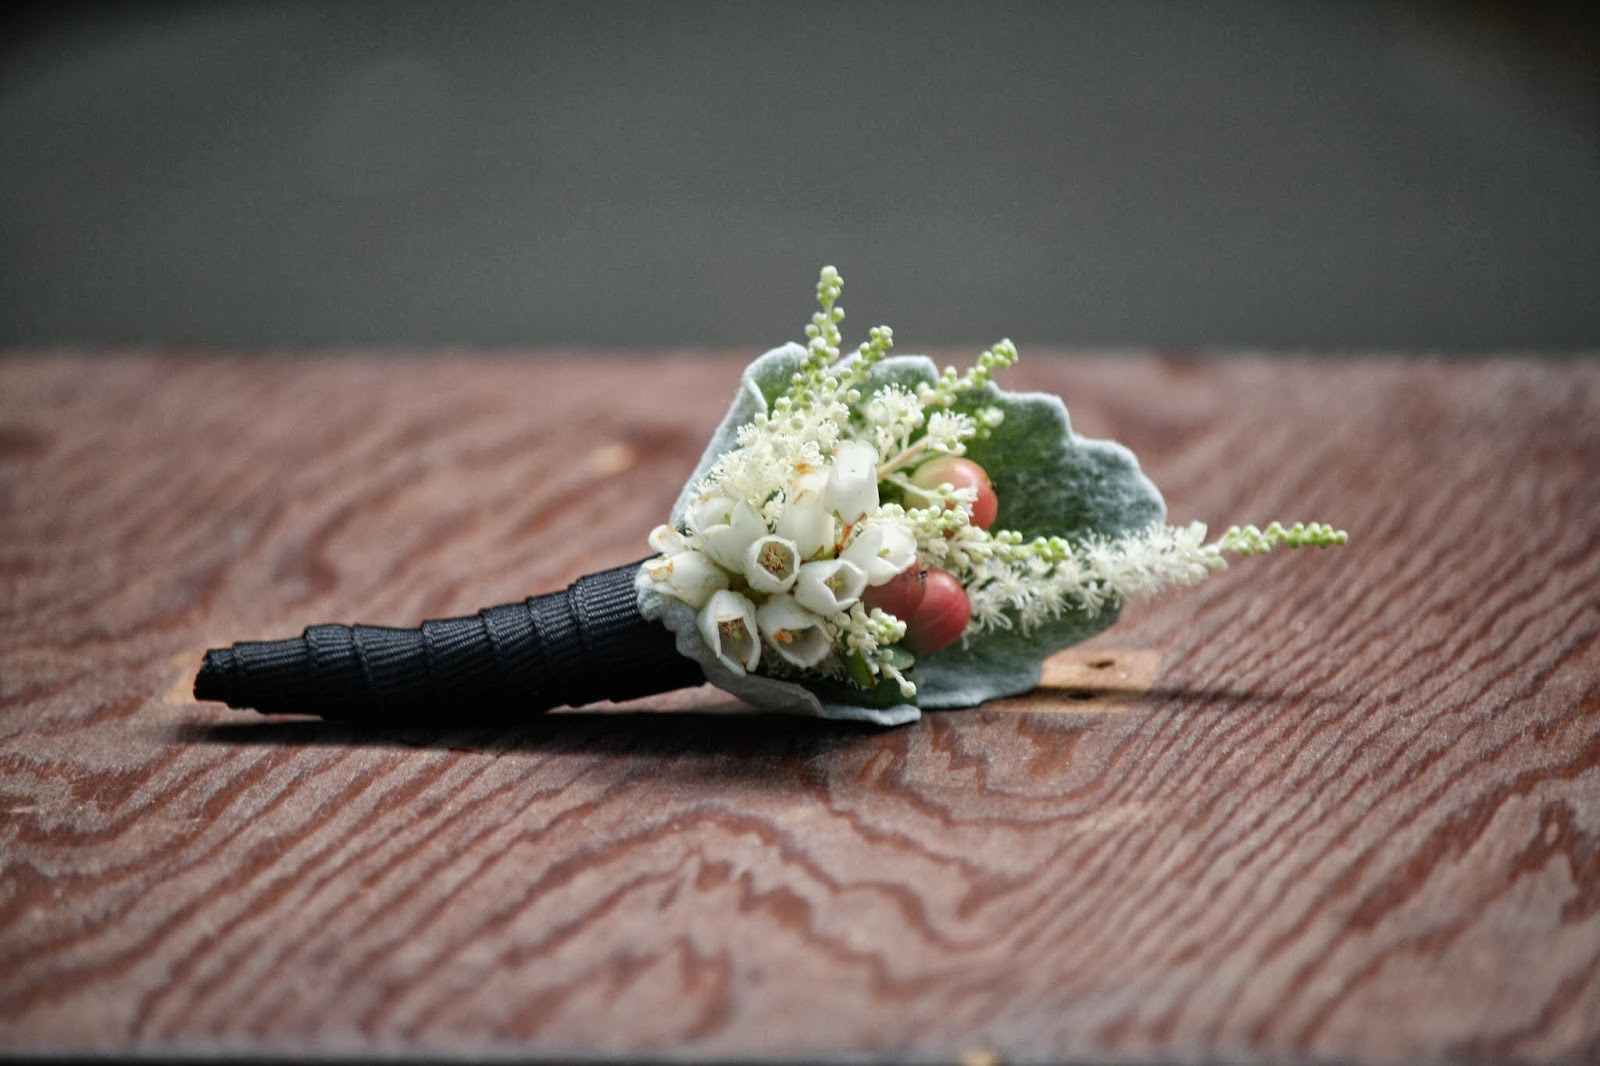 Lily of the Valley Boutonniere - Boutonnieres - Wedding Flowers - Groom - Usher - Best Man - Groomsmen - Ushers - Groom's Boutonniere